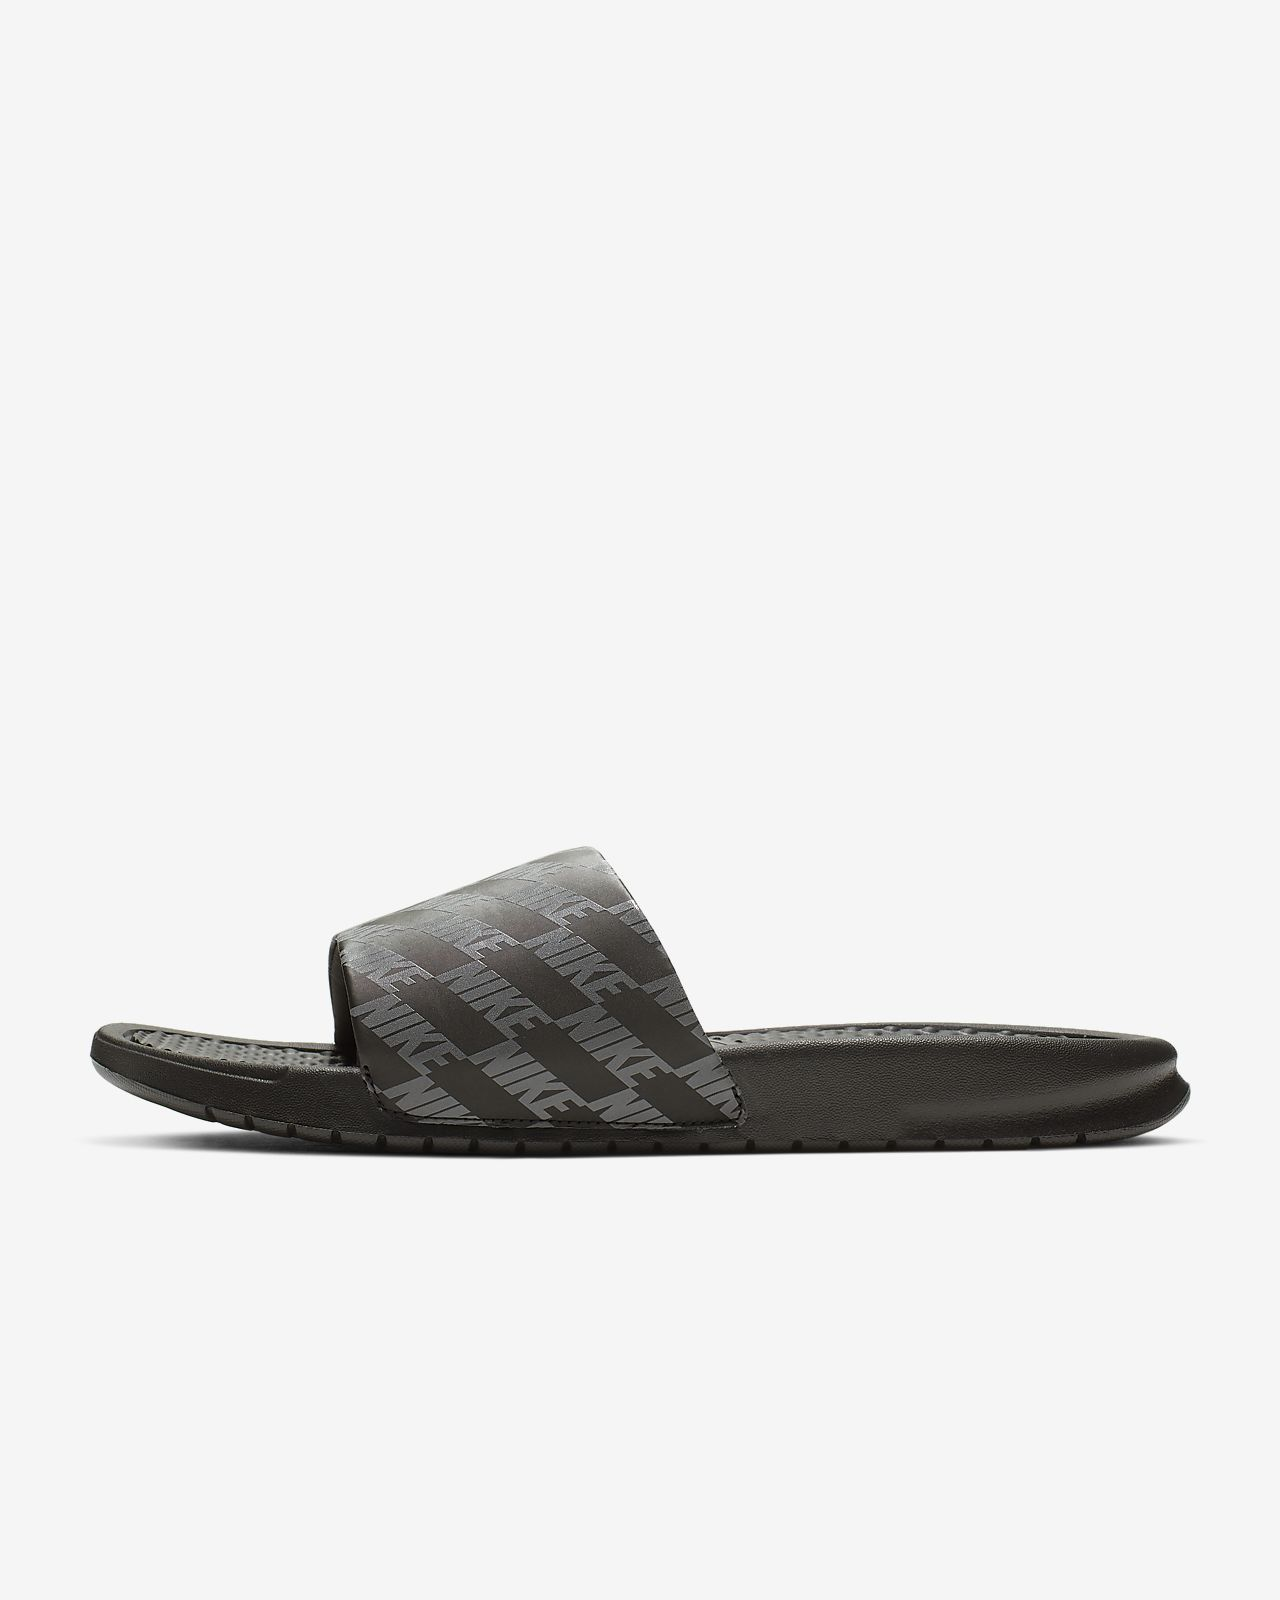 new product e614a 310b6 Low Resolution Nike Benassi Men s Slide Nike Benassi Men s Slide